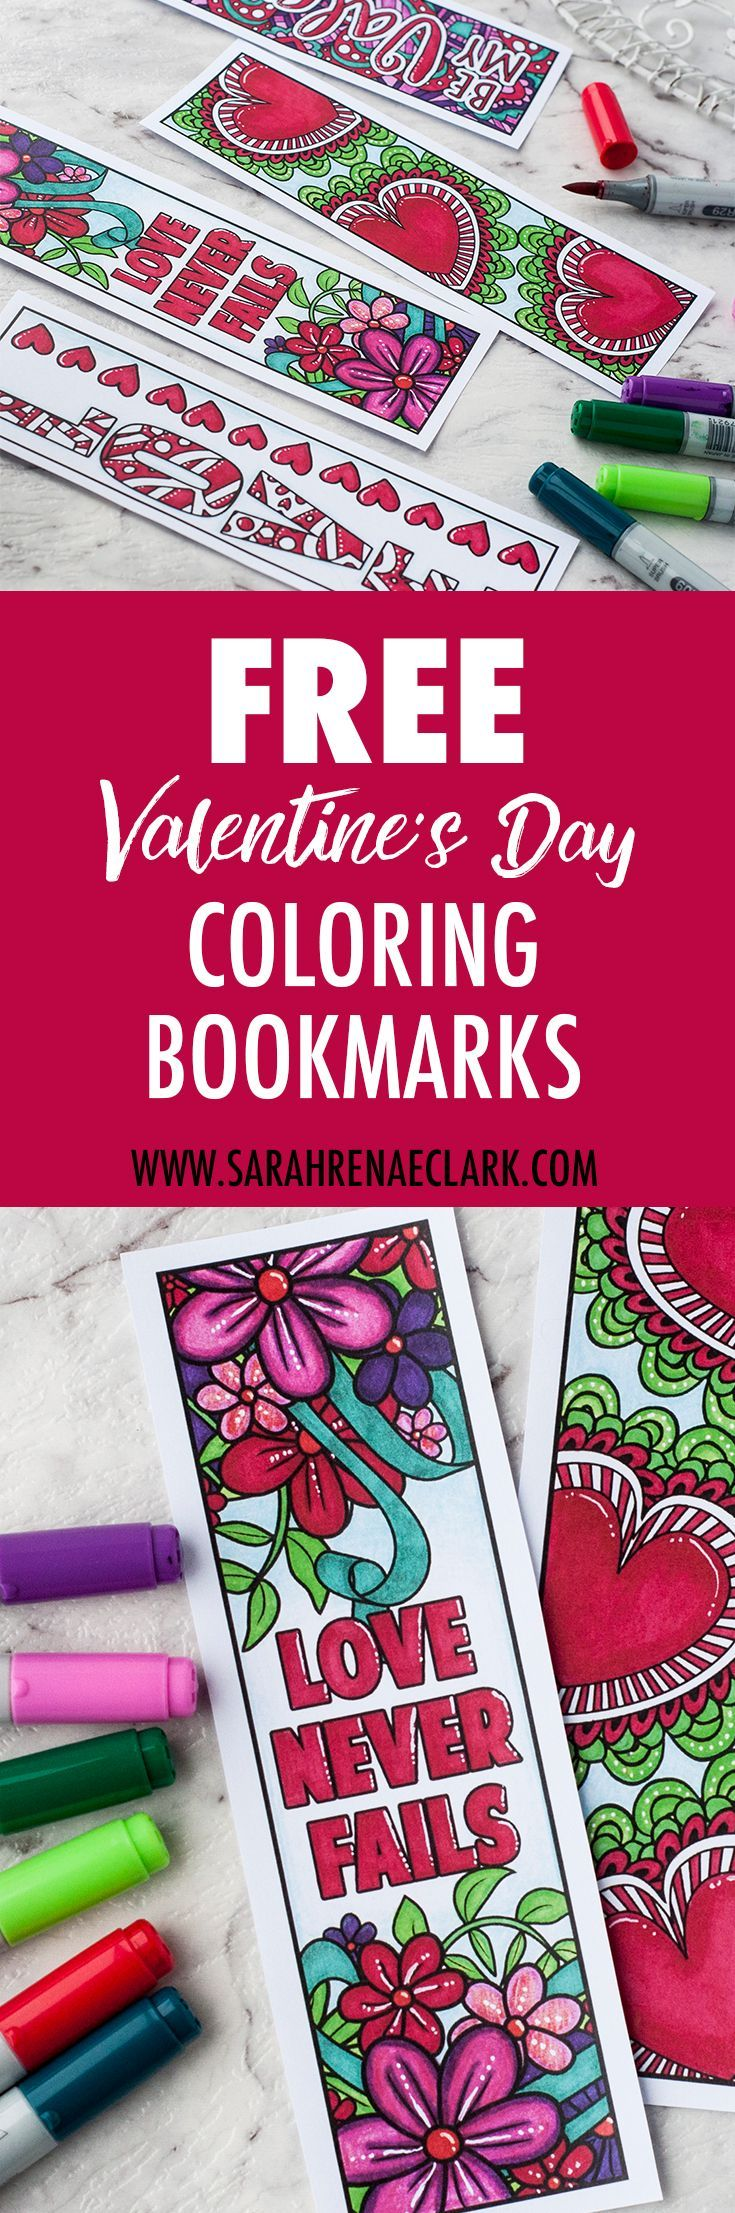 Free Valentine's Day Printable Bookmarks | Find more Valentine's coloring page craft templates at www.sarahrenaeclark.com | Valentine's Day Craft, DIY Valentine's Day, Valentine's Day activity, DIY craft, free craft template, printable coloring pages